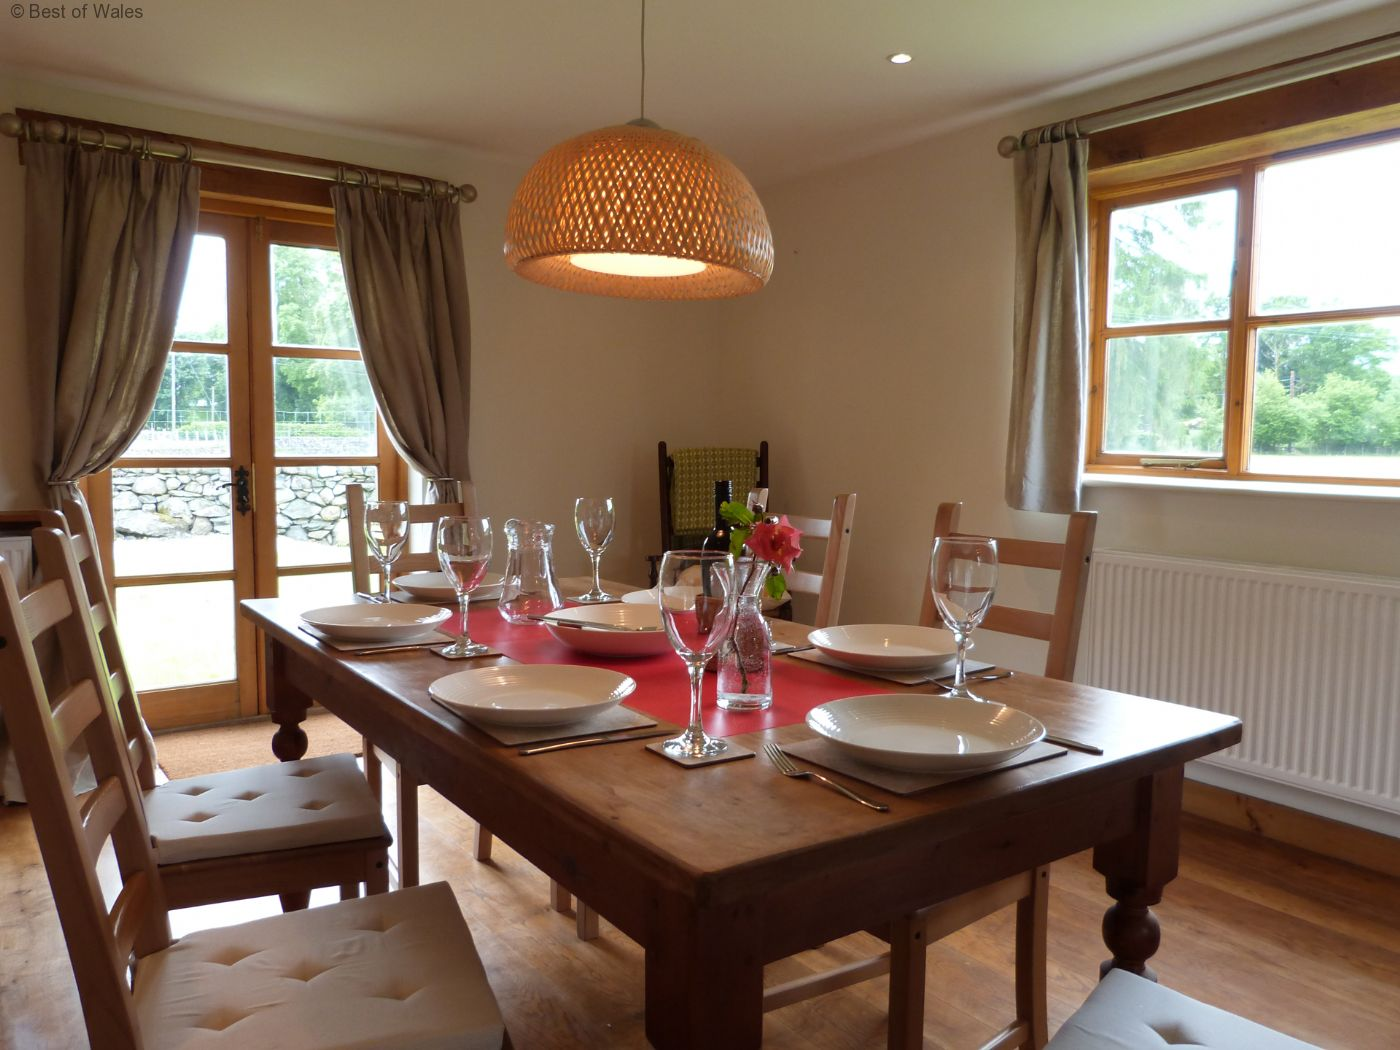 Dining Sets Tuscany Solid Wood Large Dining Set Table 6 Chairs: The Perfect Cottage For Your Walking Holidays In Wales